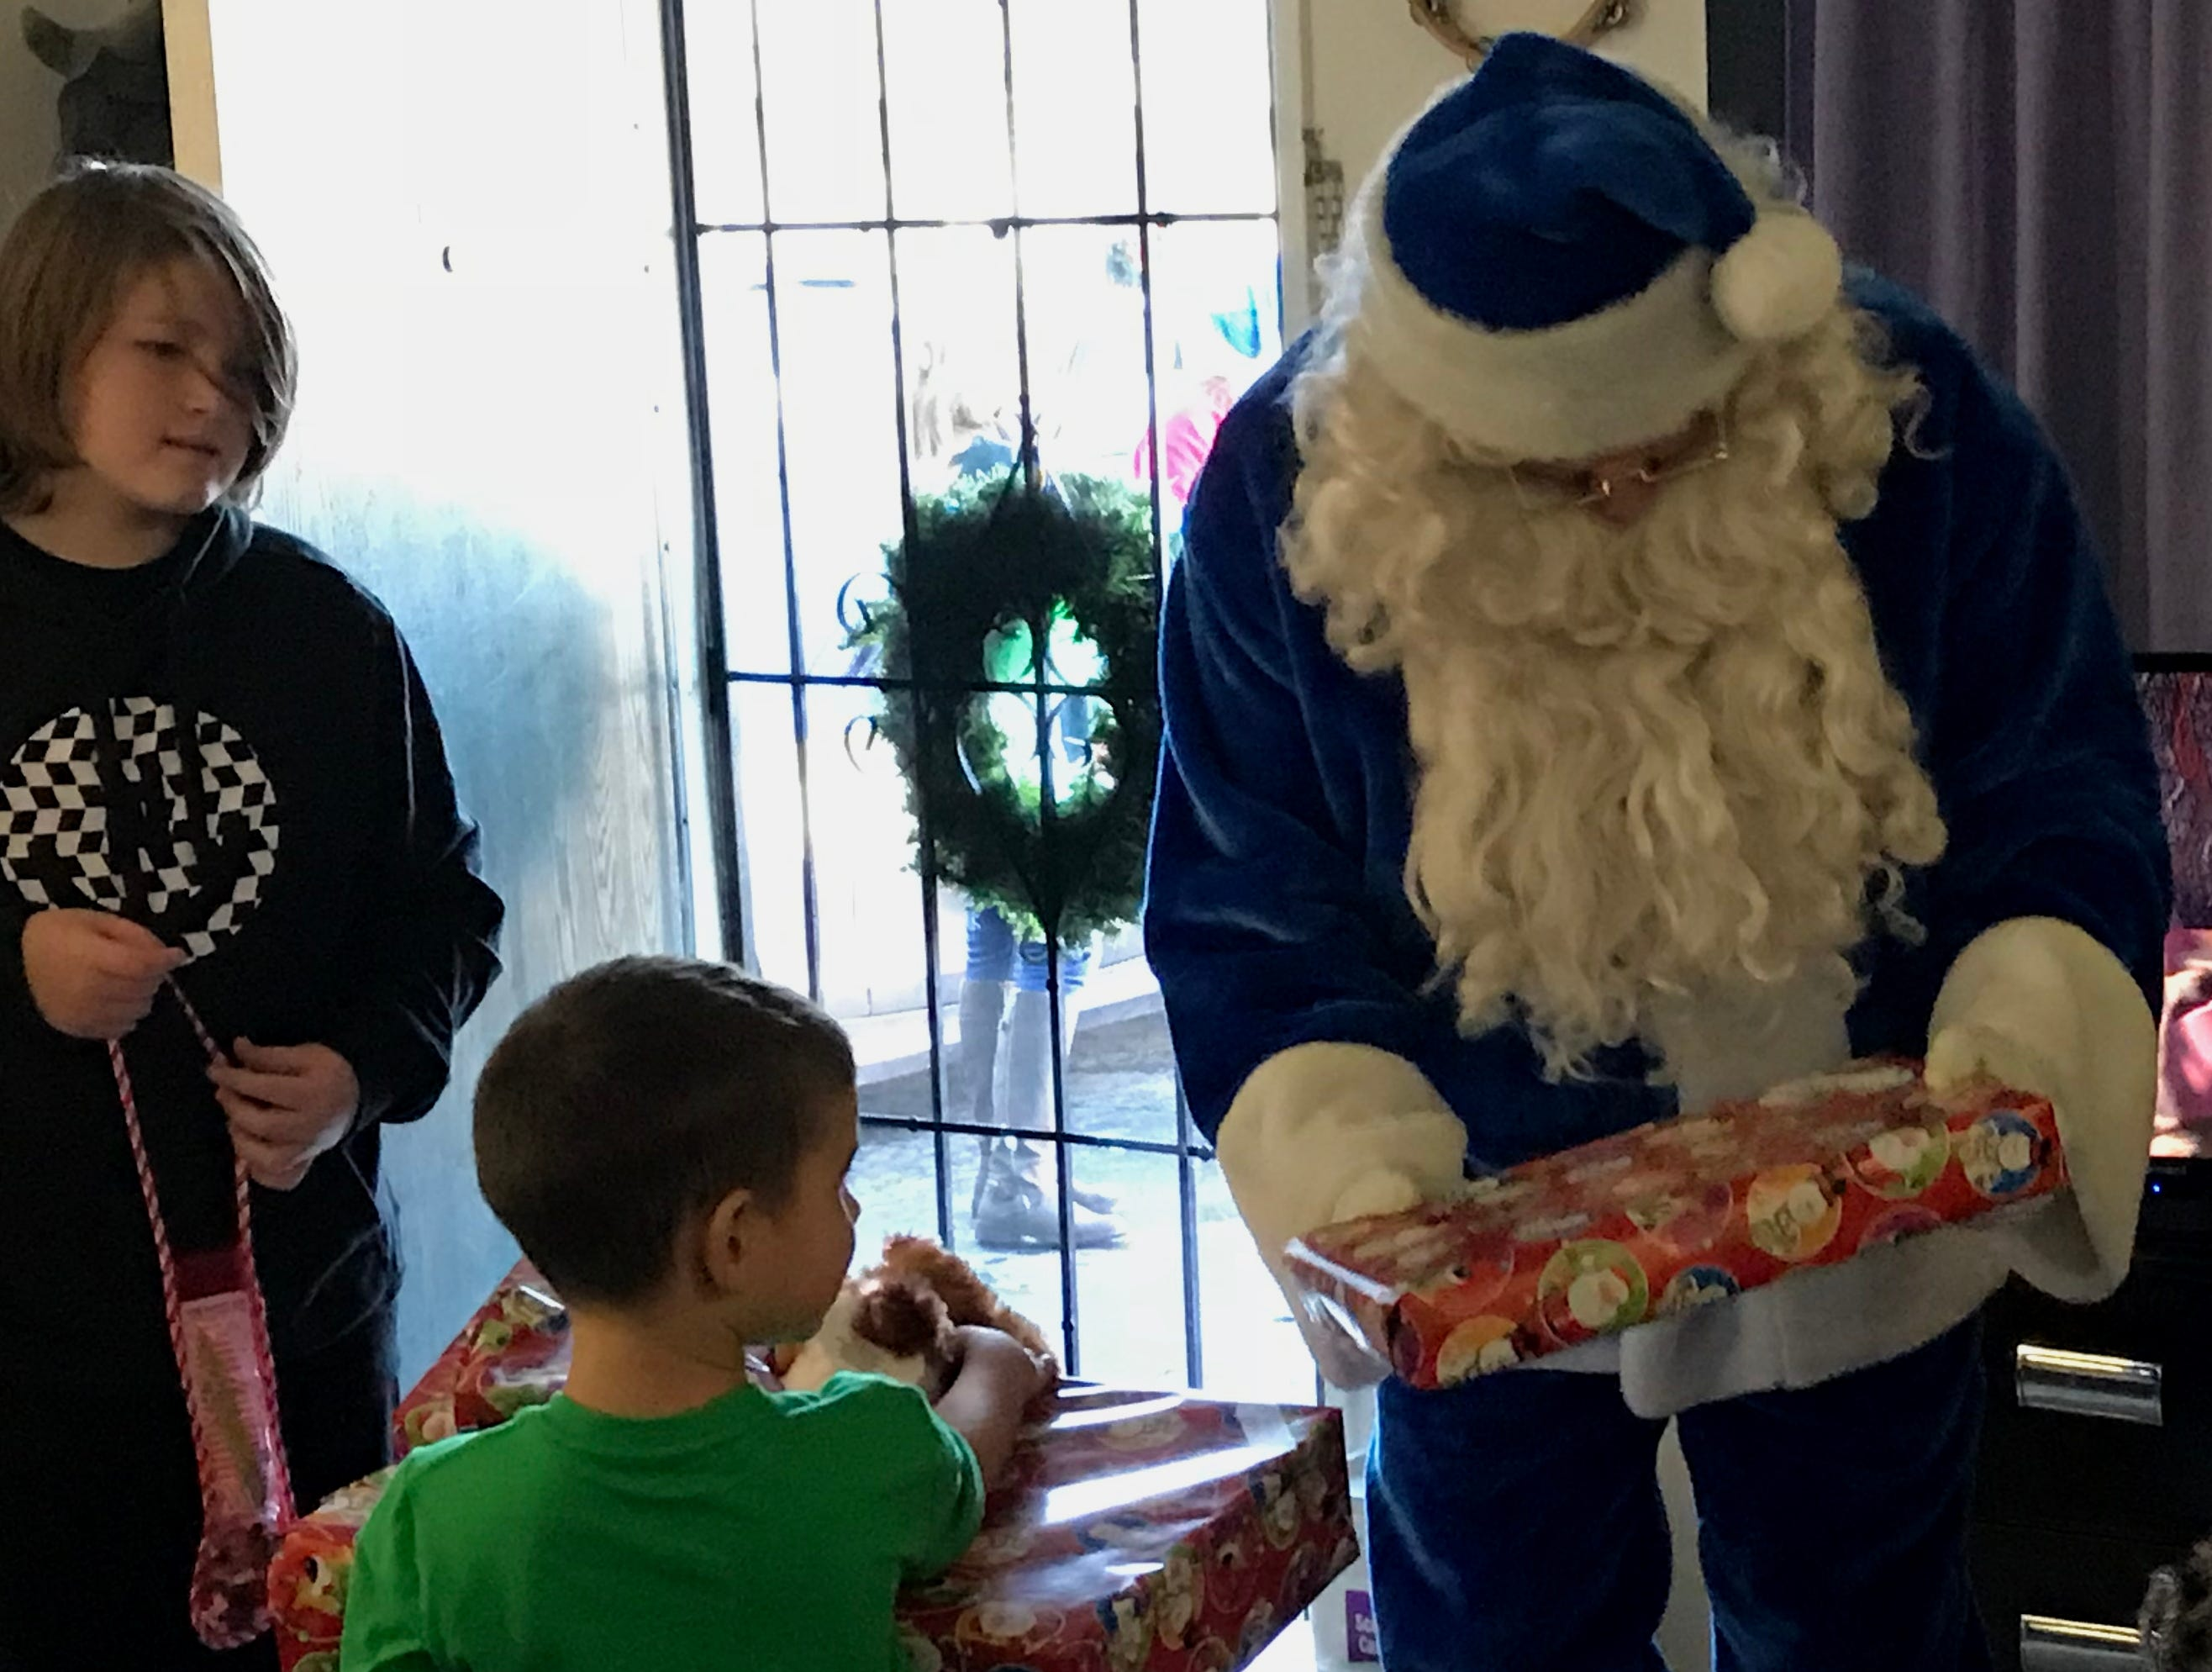 Blue Santa hands out Christmas gifts Friday to Oryn Yrigollen, 5, and his brother, Jacobs Rogers,11, at their Redding apartment.